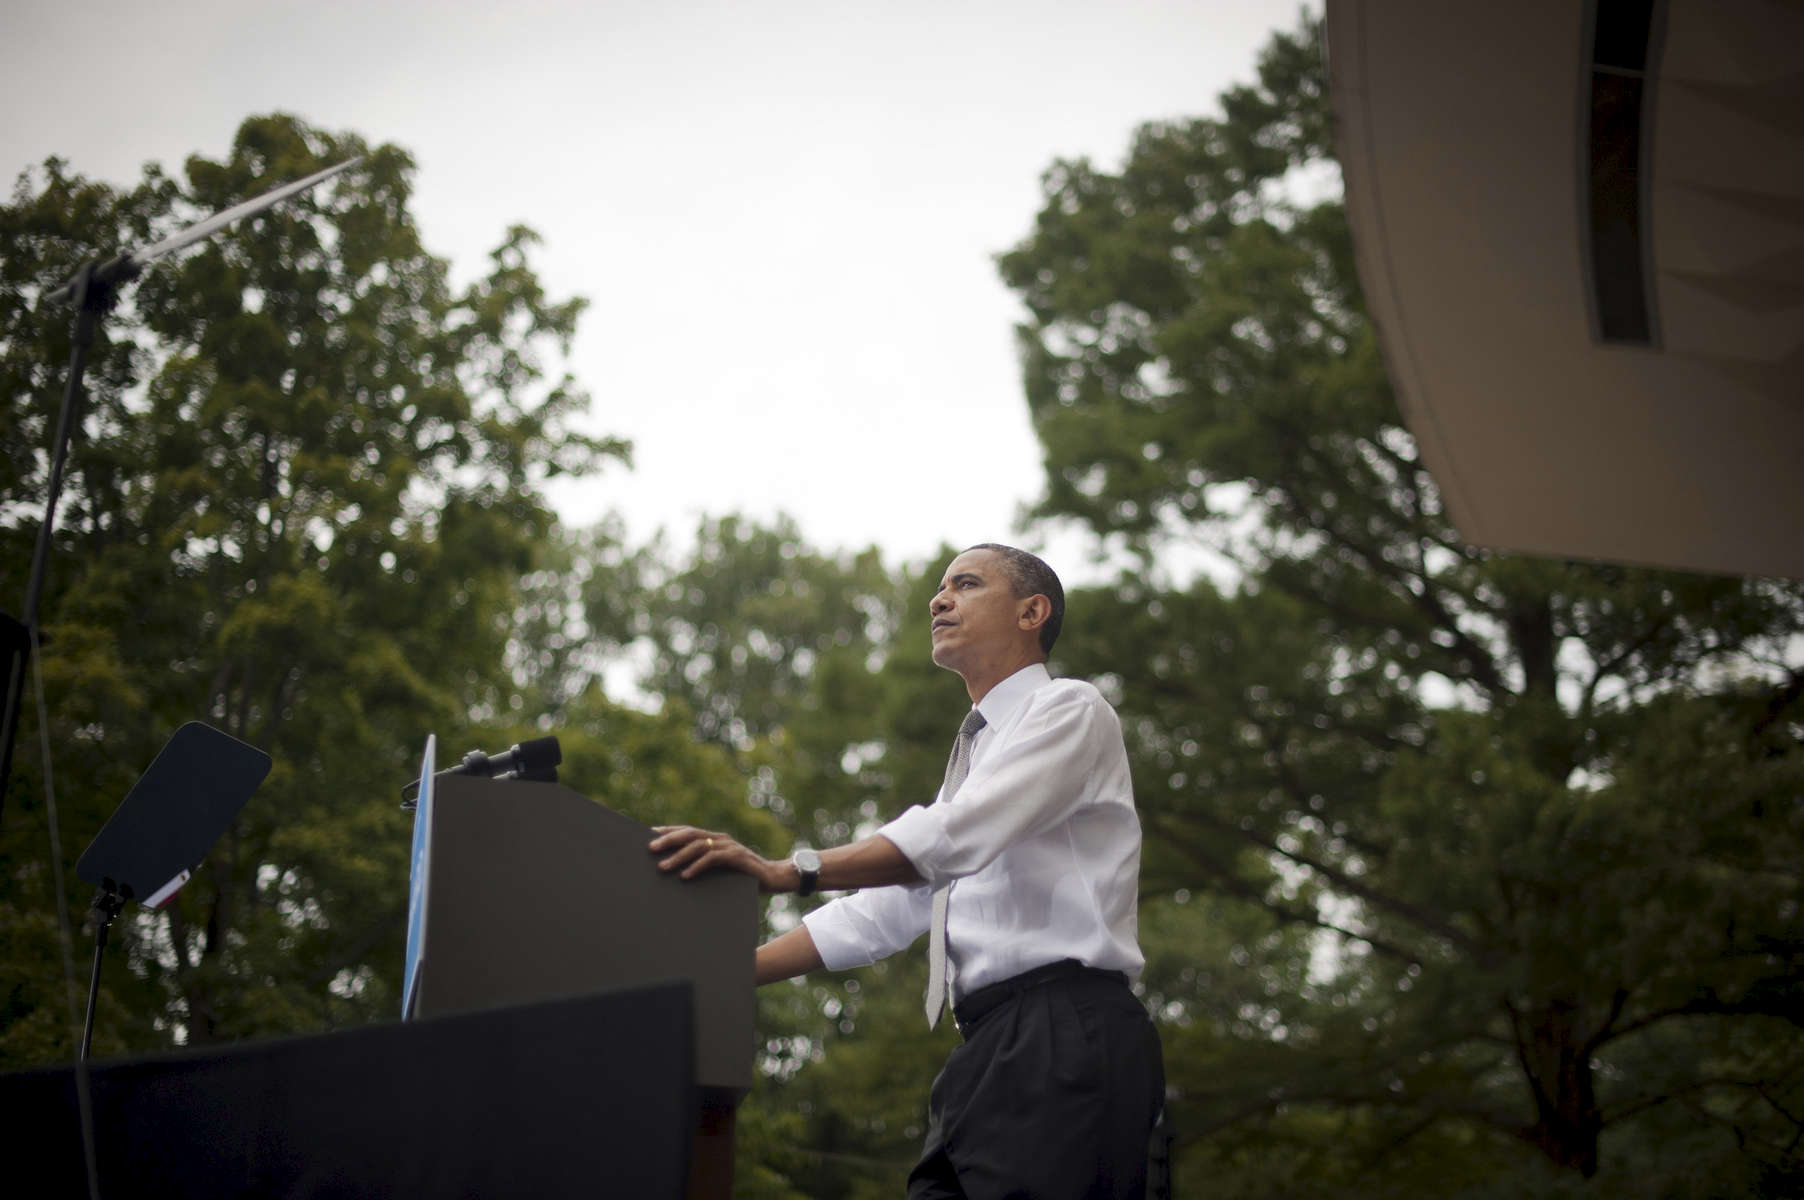 September 17, 2012 - Mt. Adams, OH: President Barack Obama  speaks at a campaign event in Mt. Adams, Ohio. (Scout Tufankjian for Obama for America/Polaris)